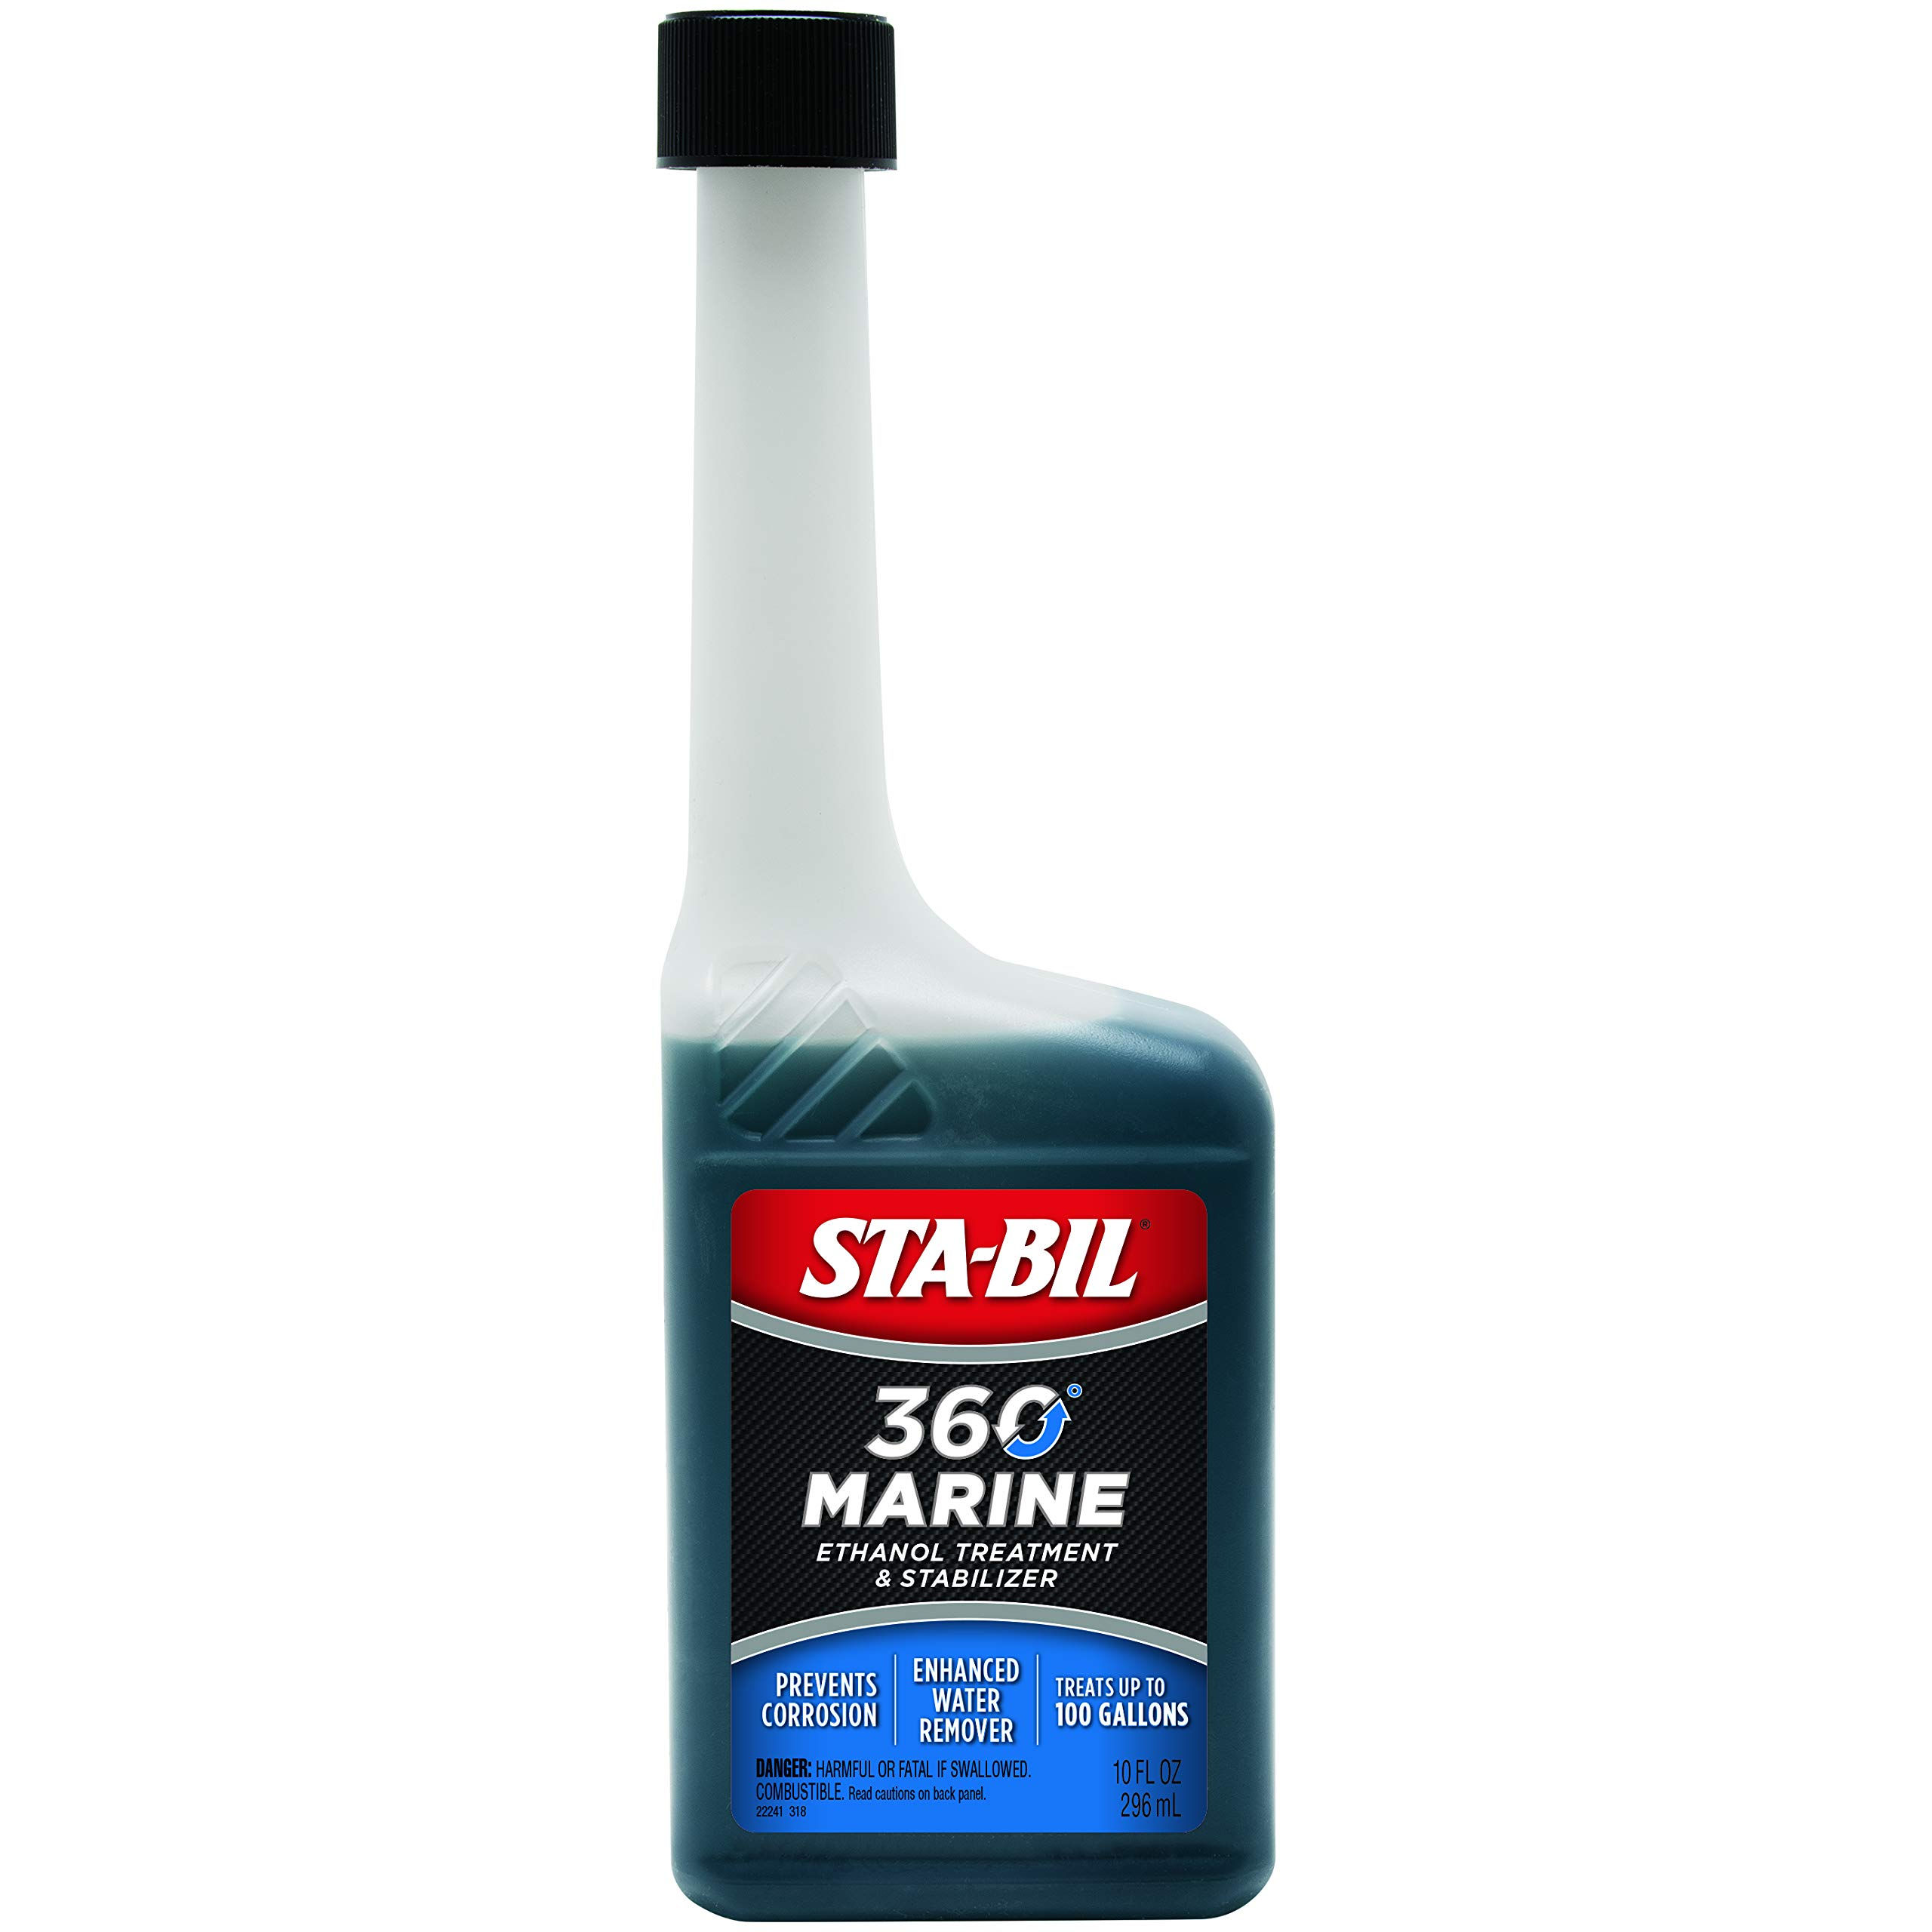 STA-BIL 360 22241-12PK Marine with Vapor Technology, 10 oz. (Pack of 12) by STA-BIL